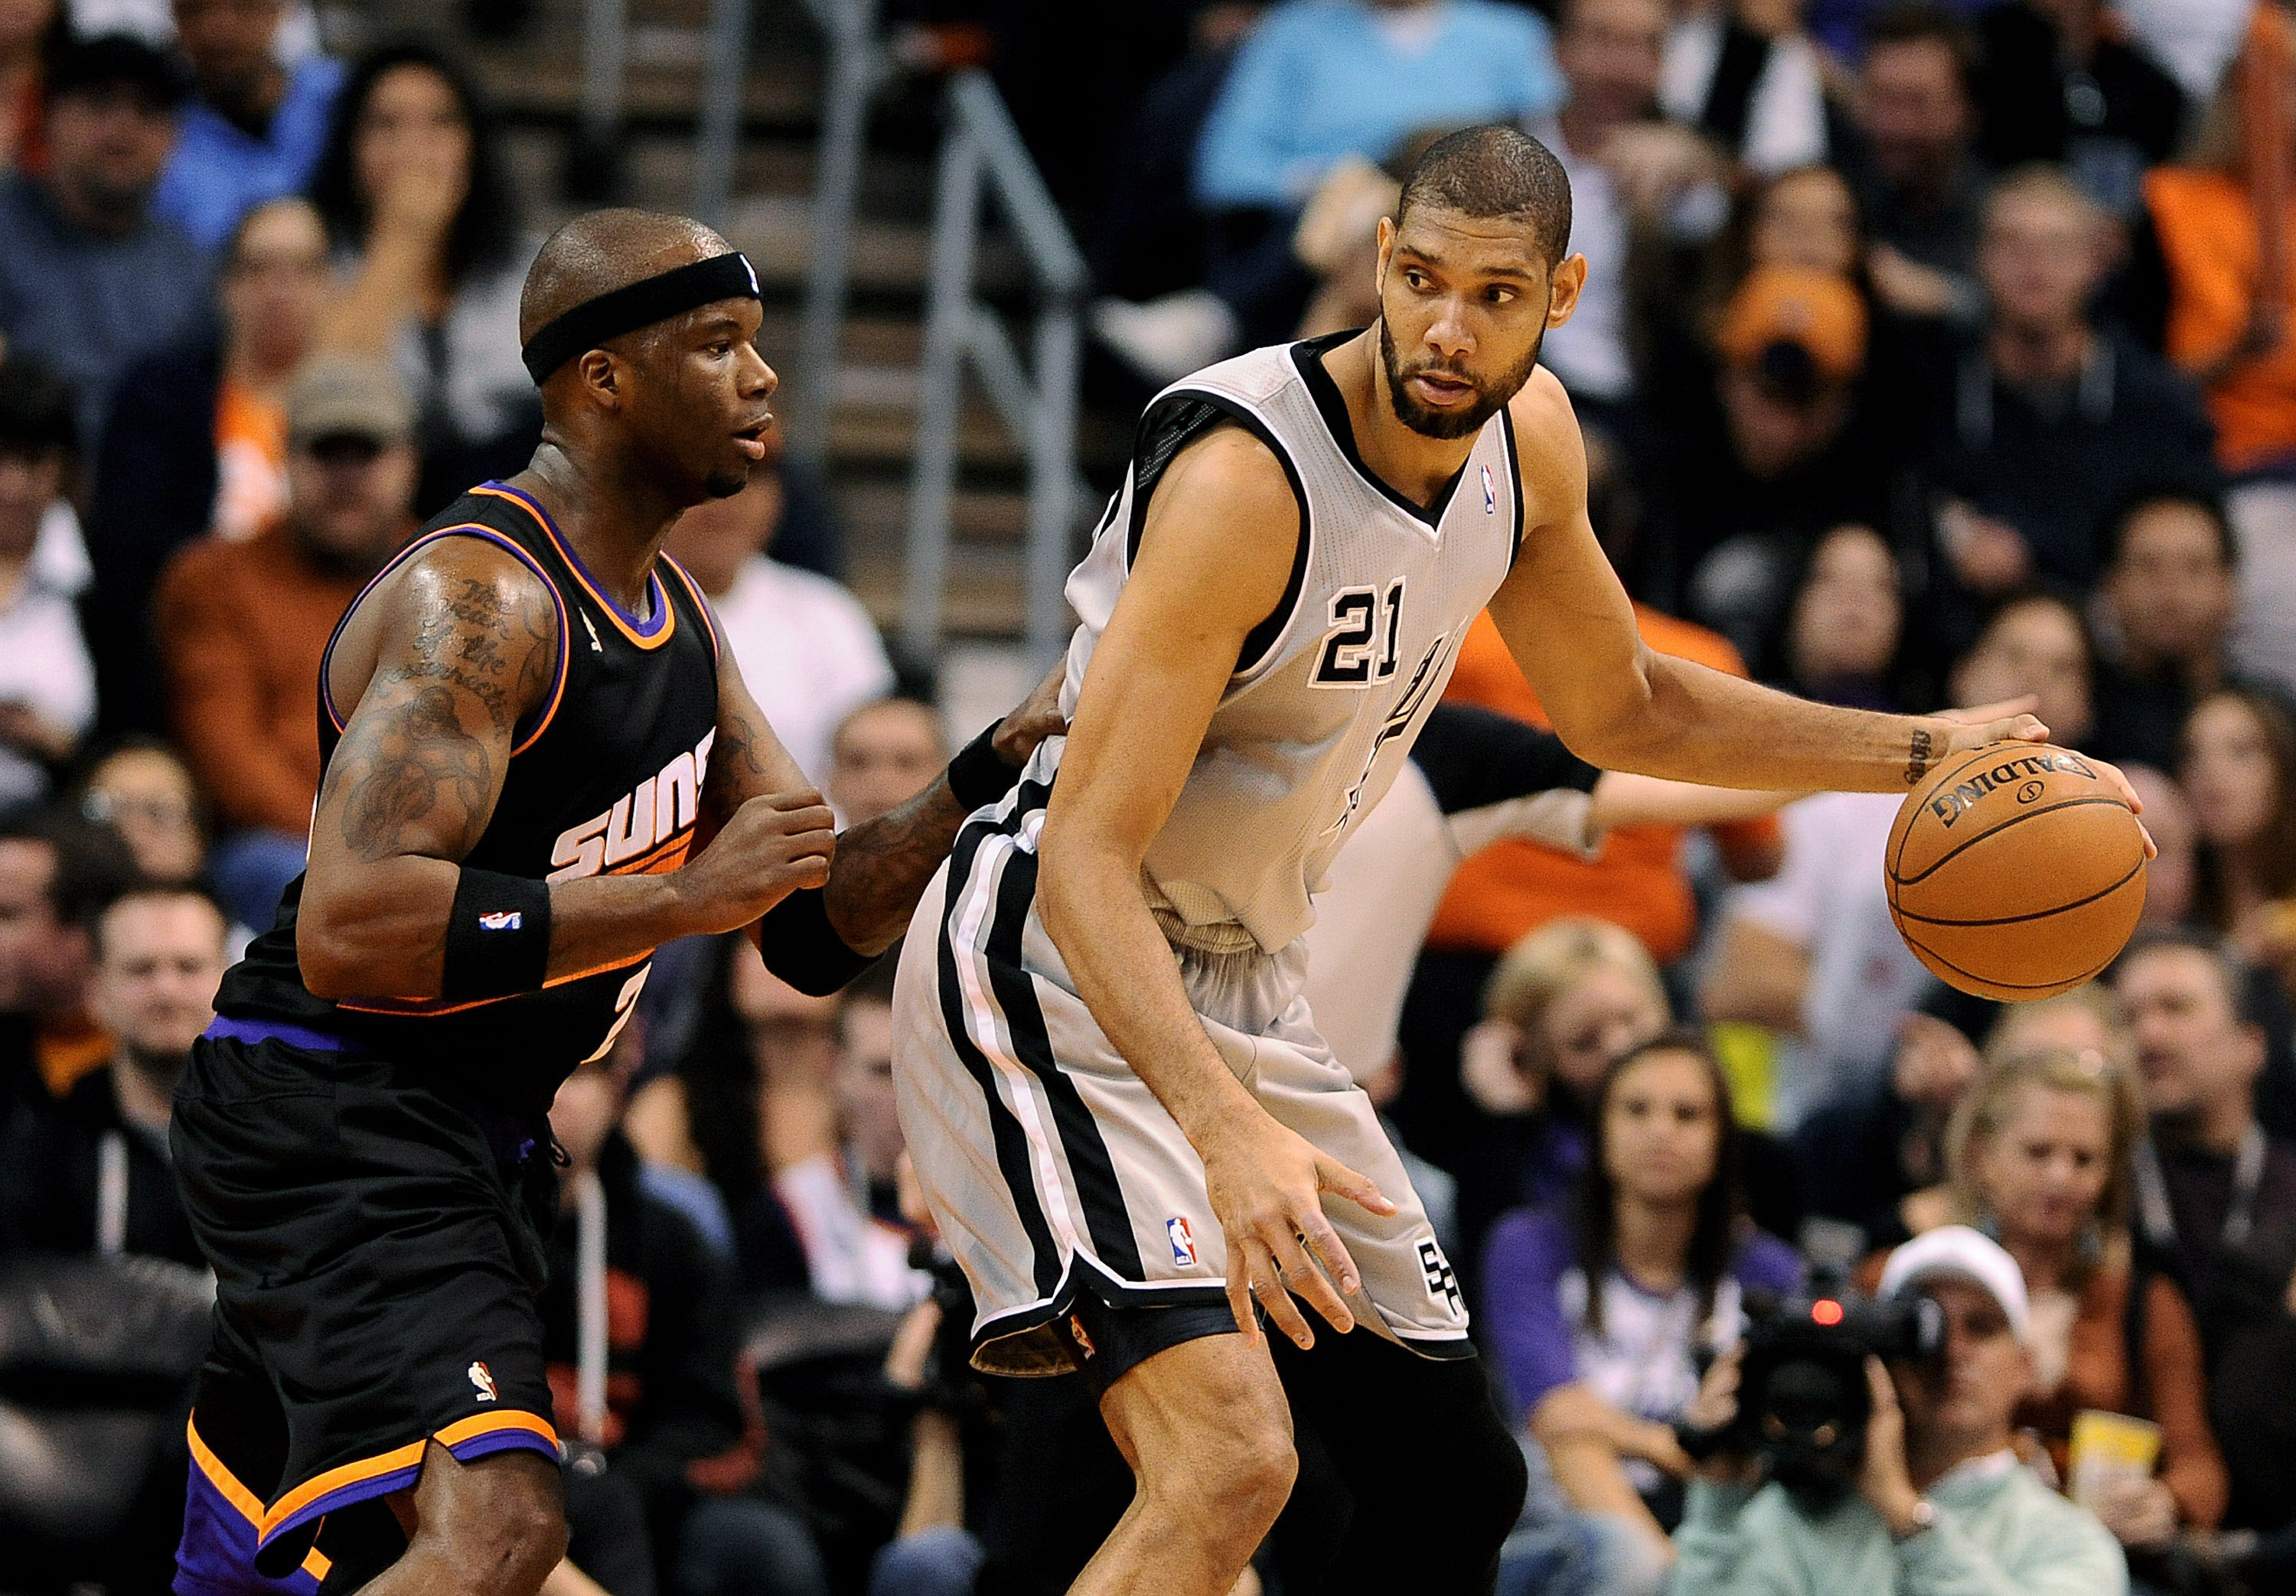 Tim Duncan, working against the Suns' Jermaine O'Neal, has helped keep the Spurs on top. (USA Today Sports)